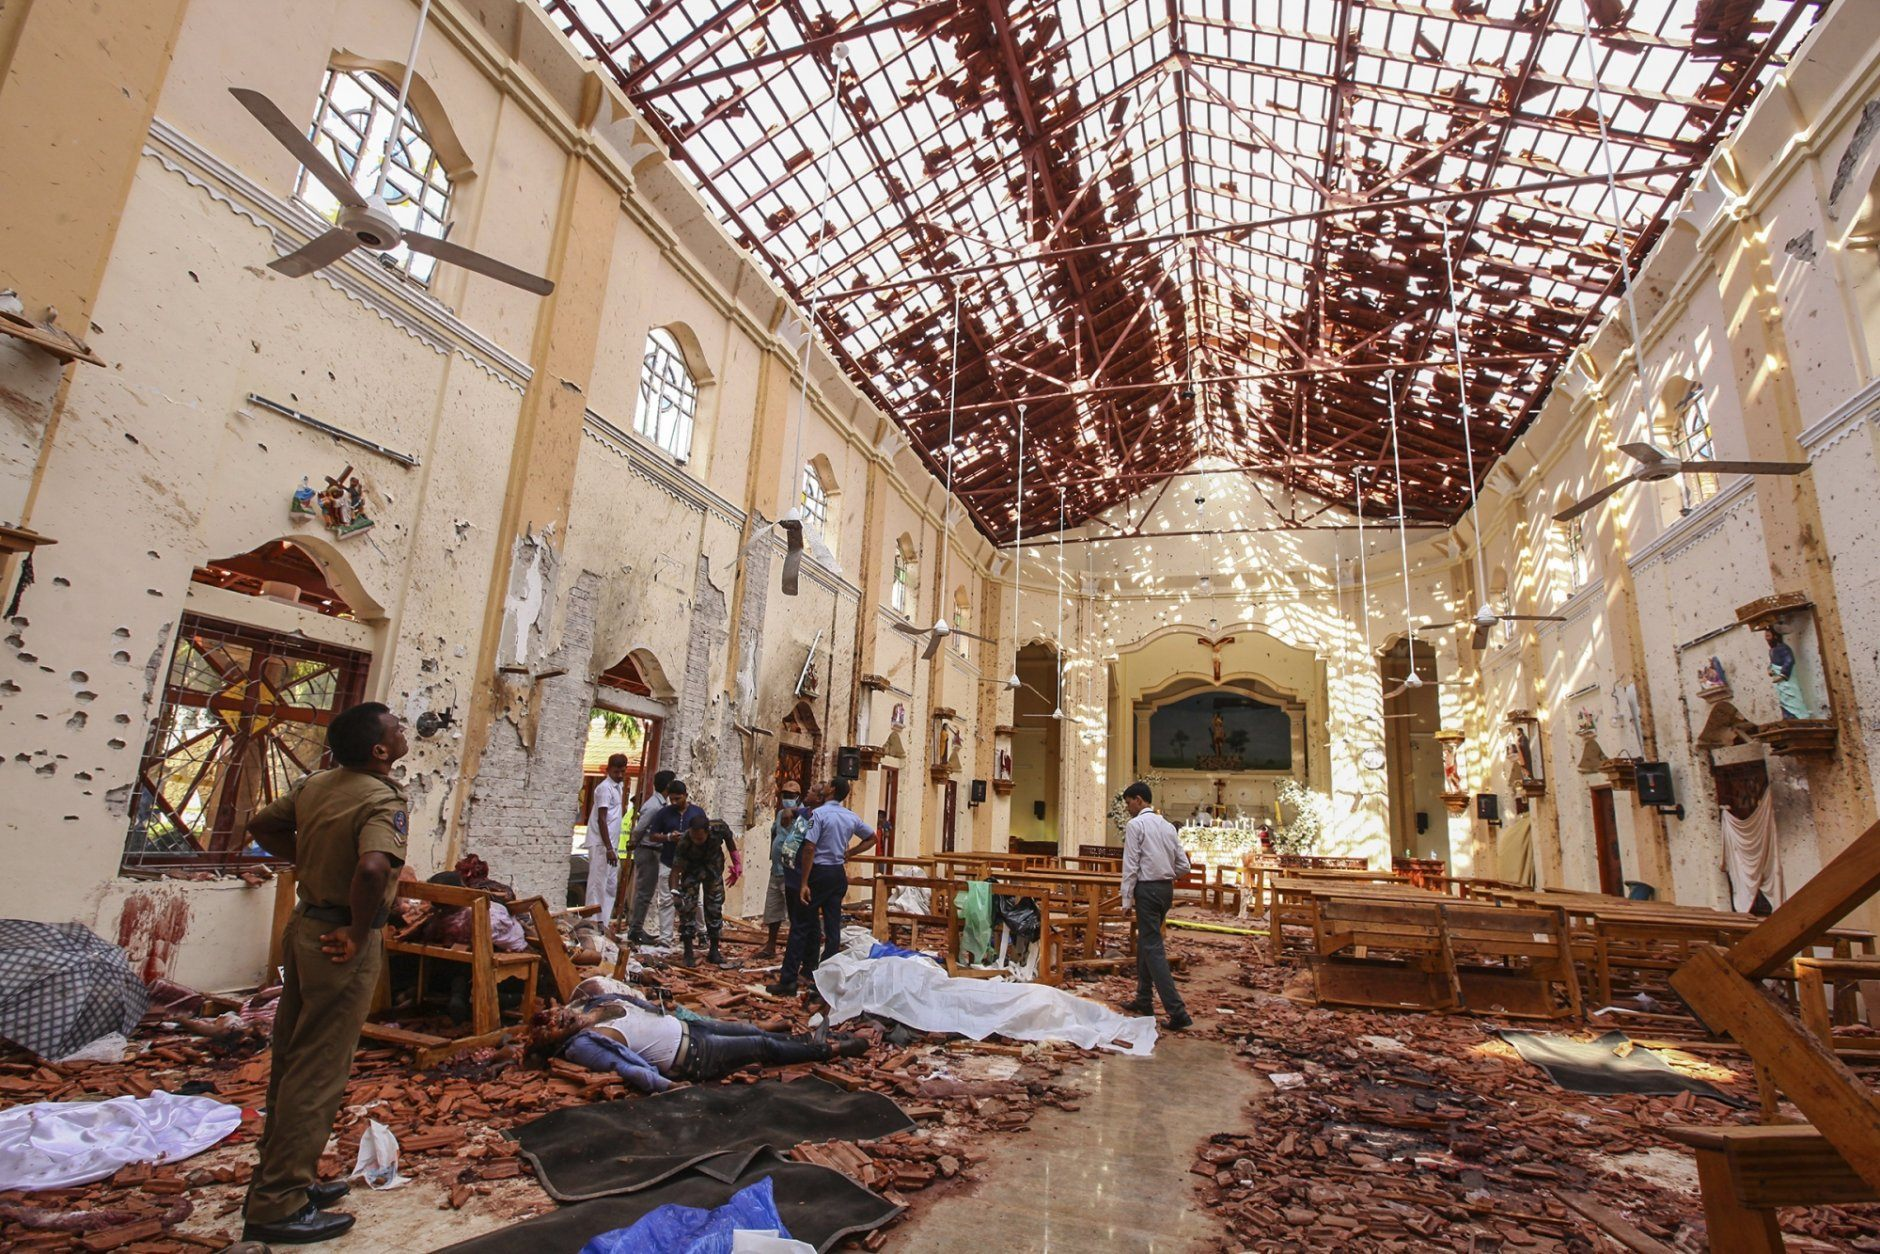 Dead bodies of victims lie inside St. Sebastian's Church damaged in blast in Negombo, north of Colombo, Sri Lanka, Sunday, April 21, 2019.  More than hundred were killed and hundreds more hospitalized with injuries from eight blasts that rocked churches and hotels in and just outside of Sri Lanka's capital on Easter Sunday, officials said, the worst violence to hit the South Asian country since its civil war ended a decade ago. (AP Photo/Chamila Karunarathne)